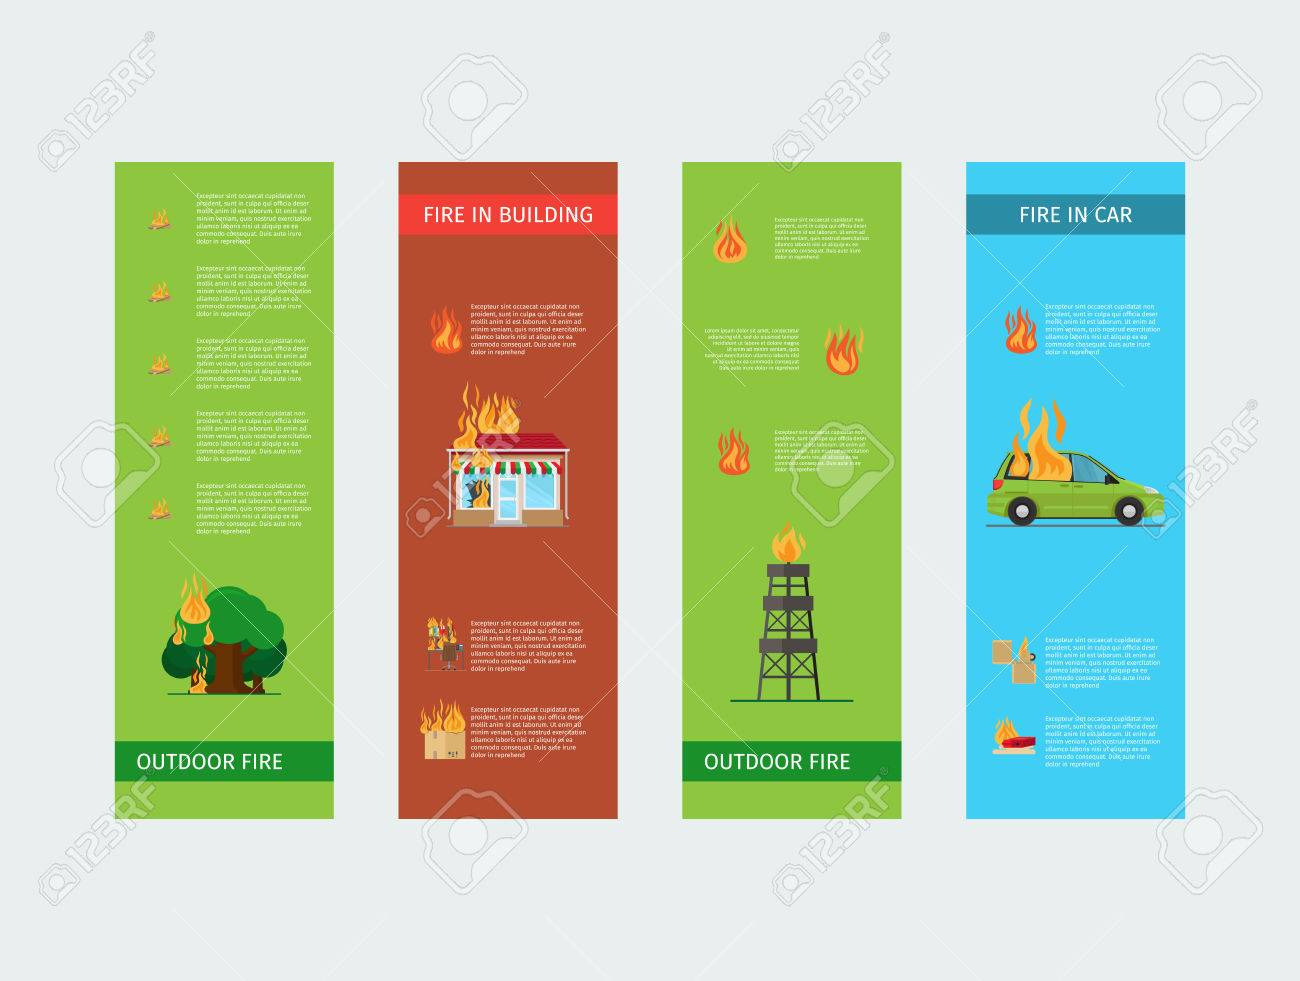 Fire risk vertical flyers. Fire in home and building,outdoor and in the car. Vector illustration - 68551193